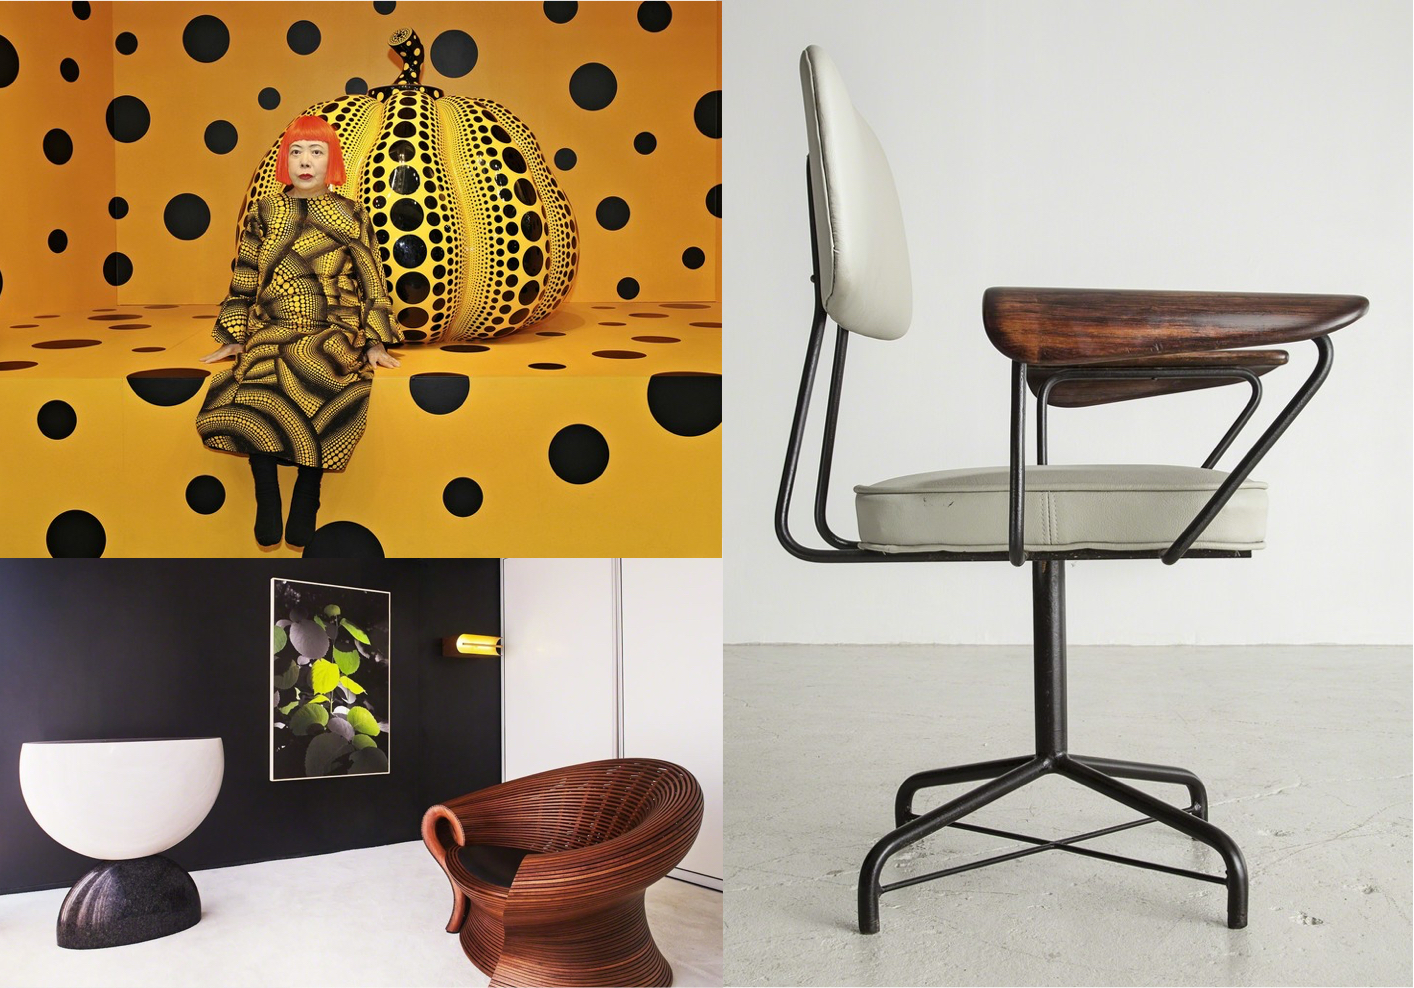 Buy Art And Design In One Place